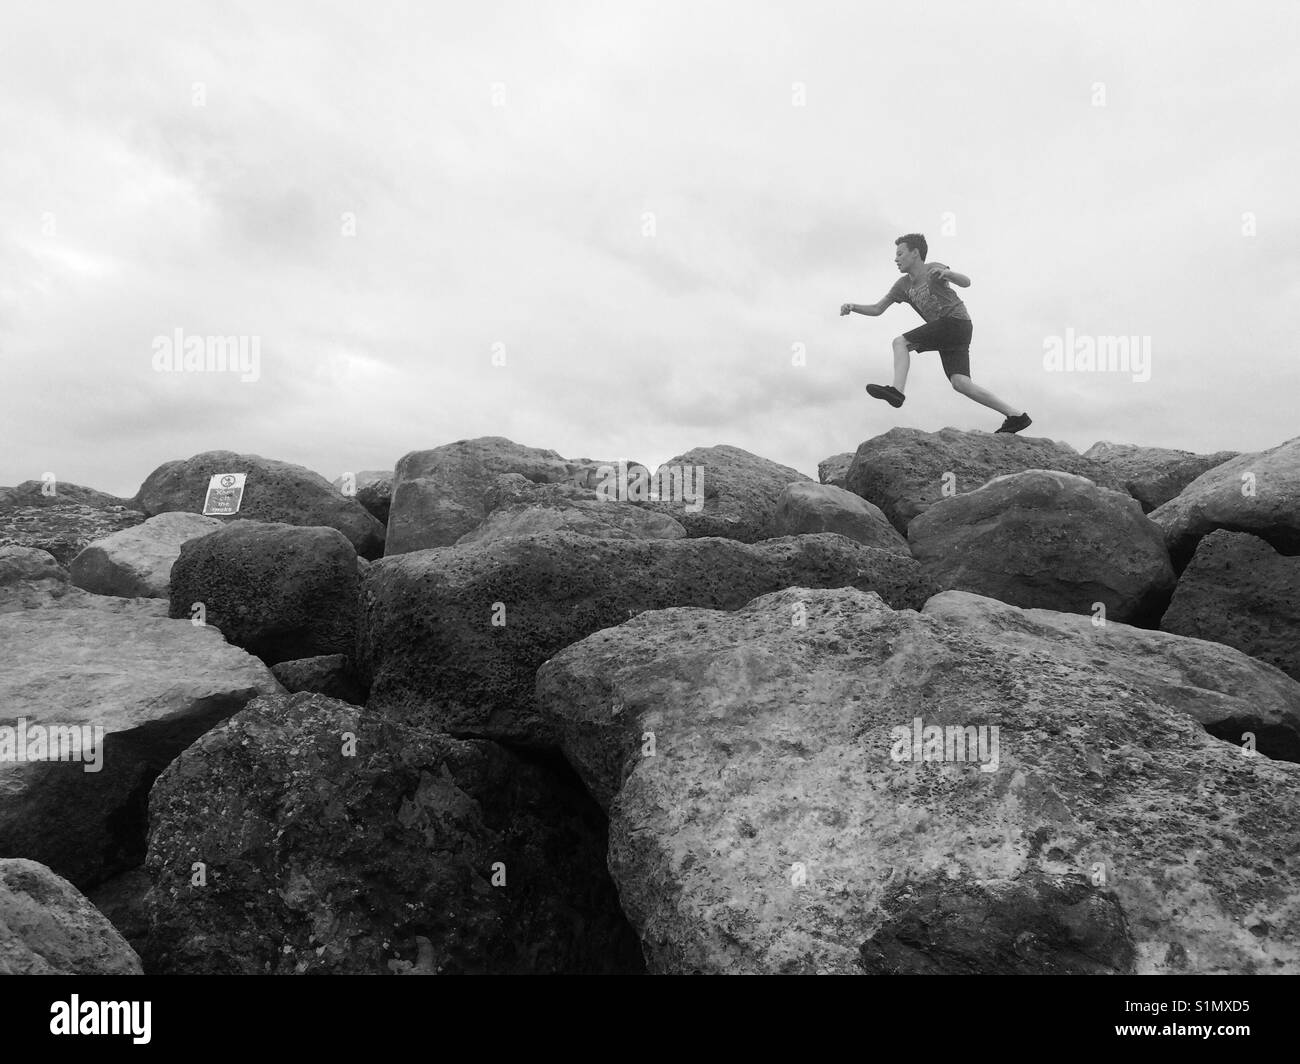 Boy leaping over boulders - Stock Image